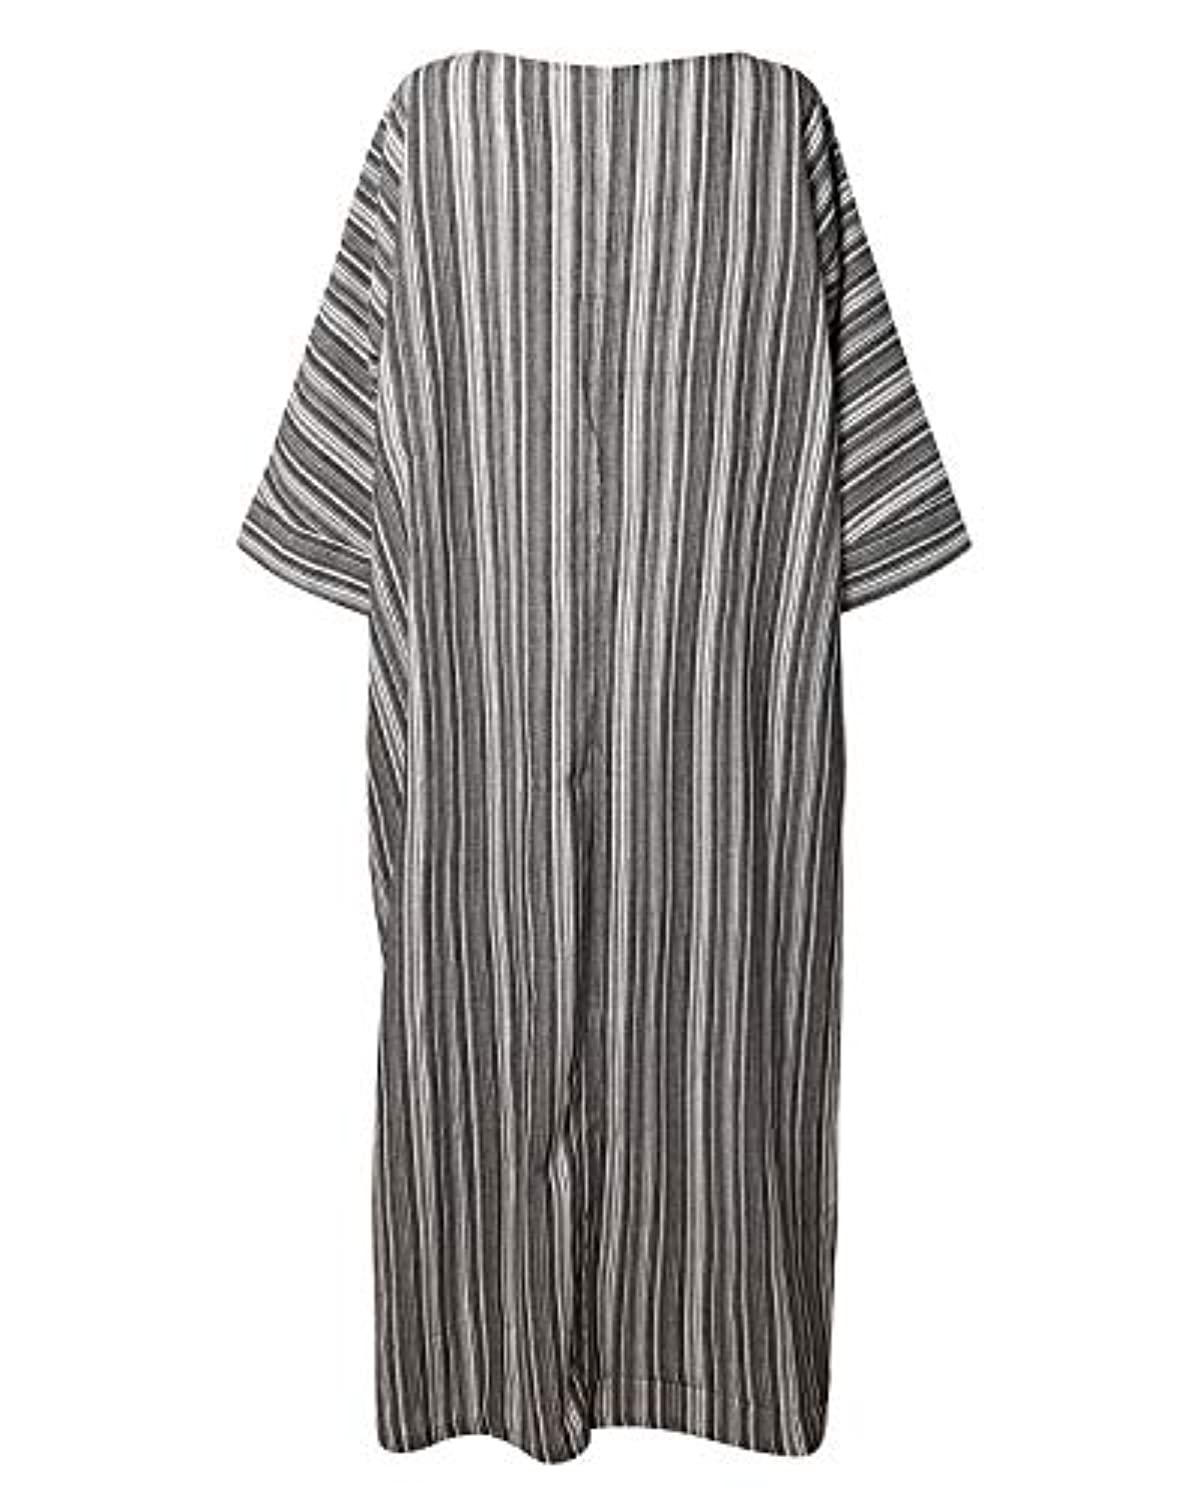 Women Summer Stripe Long Sleeve V-Neck Cotton Linen Plus Size Kaftan Dress S-5XL